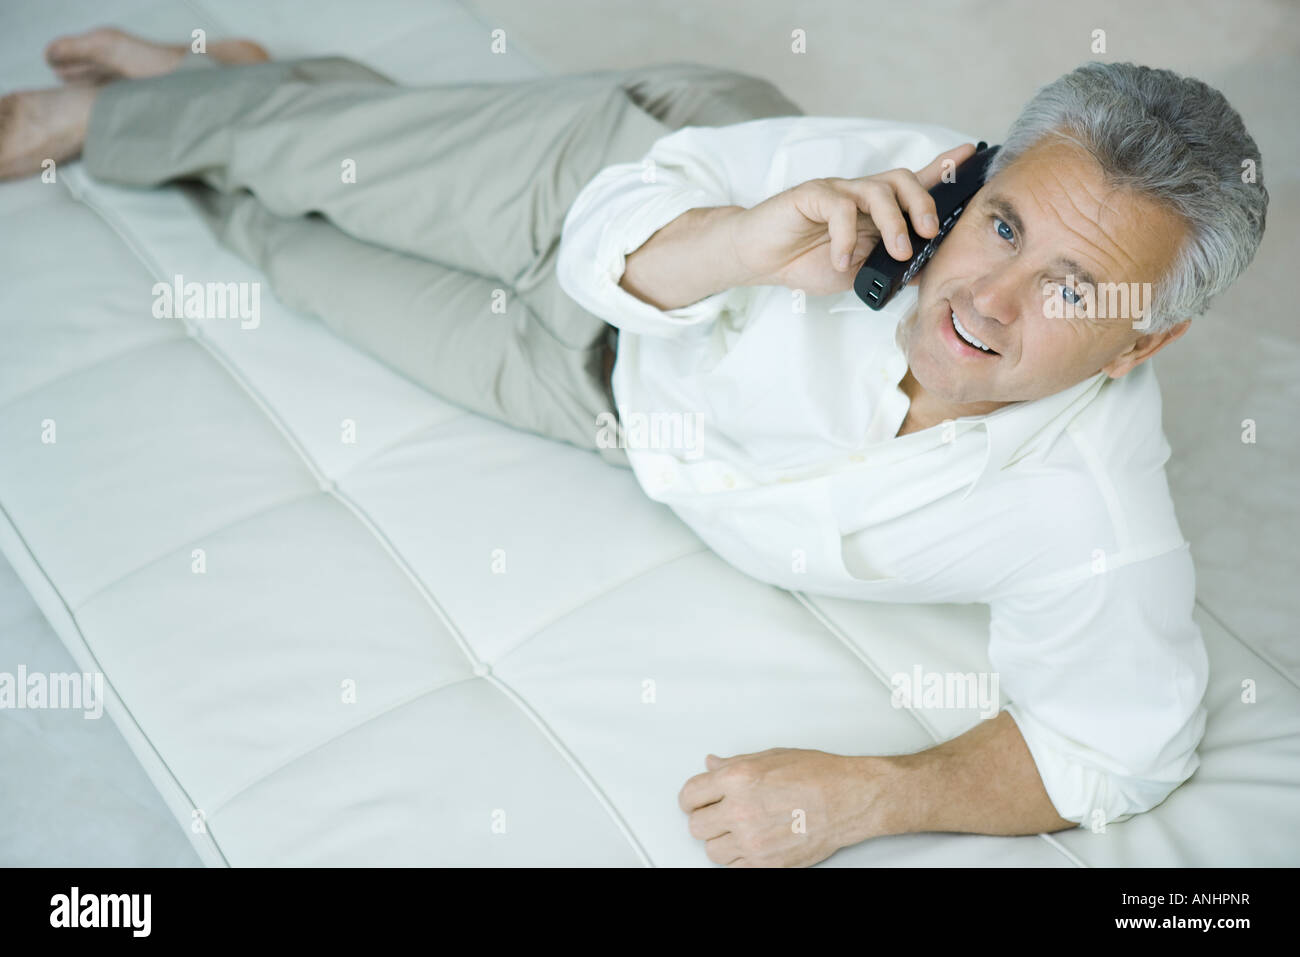 Mature man lying on chaise longue using cordless phone, looking up at camera - Stock Image